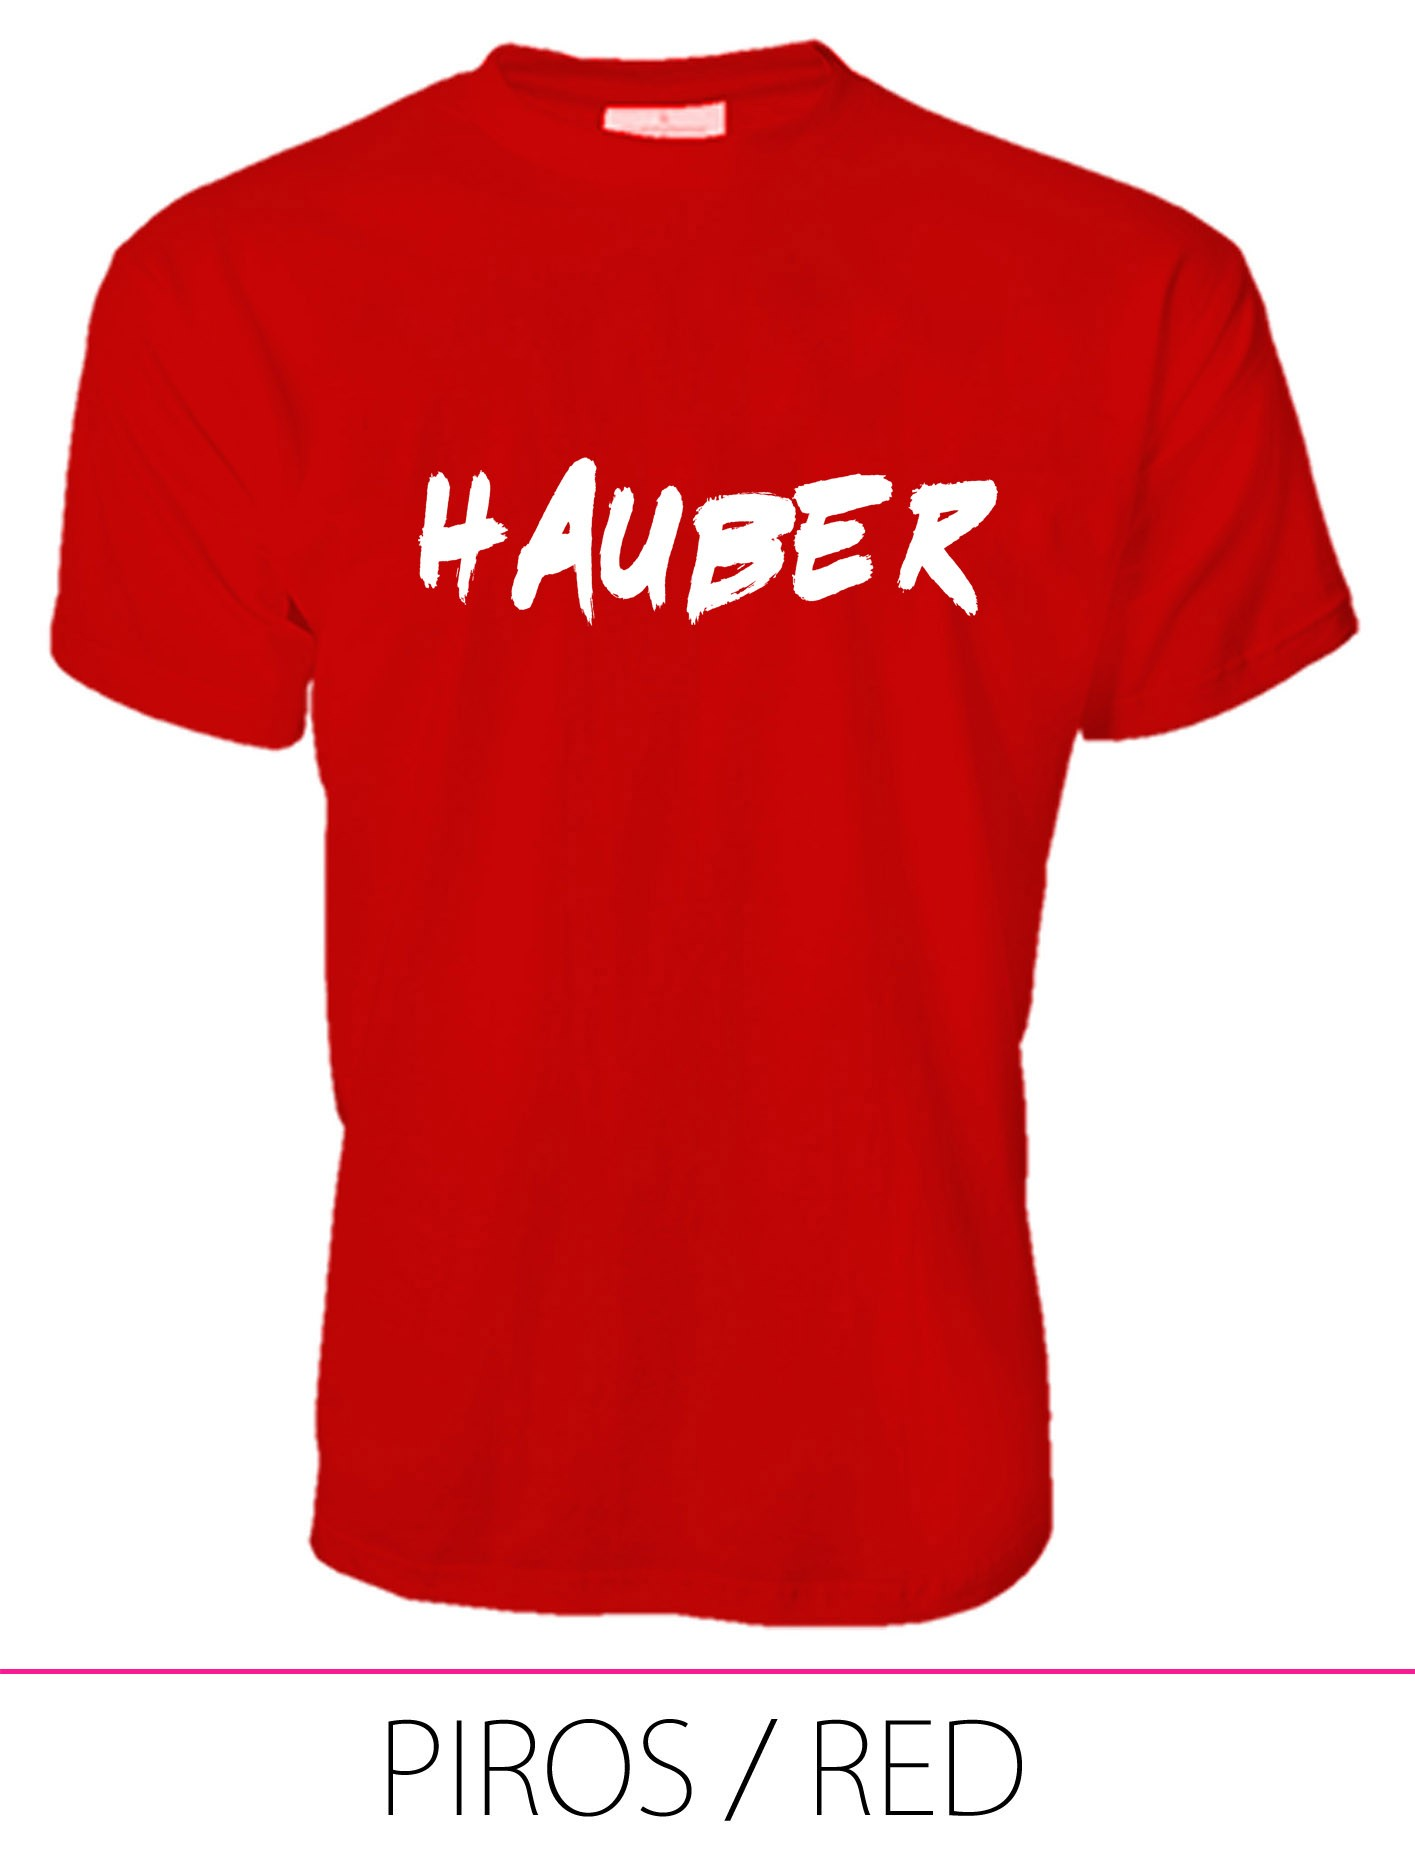 MEN PREMIUM CREW NECK T-SHIRT HAUBER RED